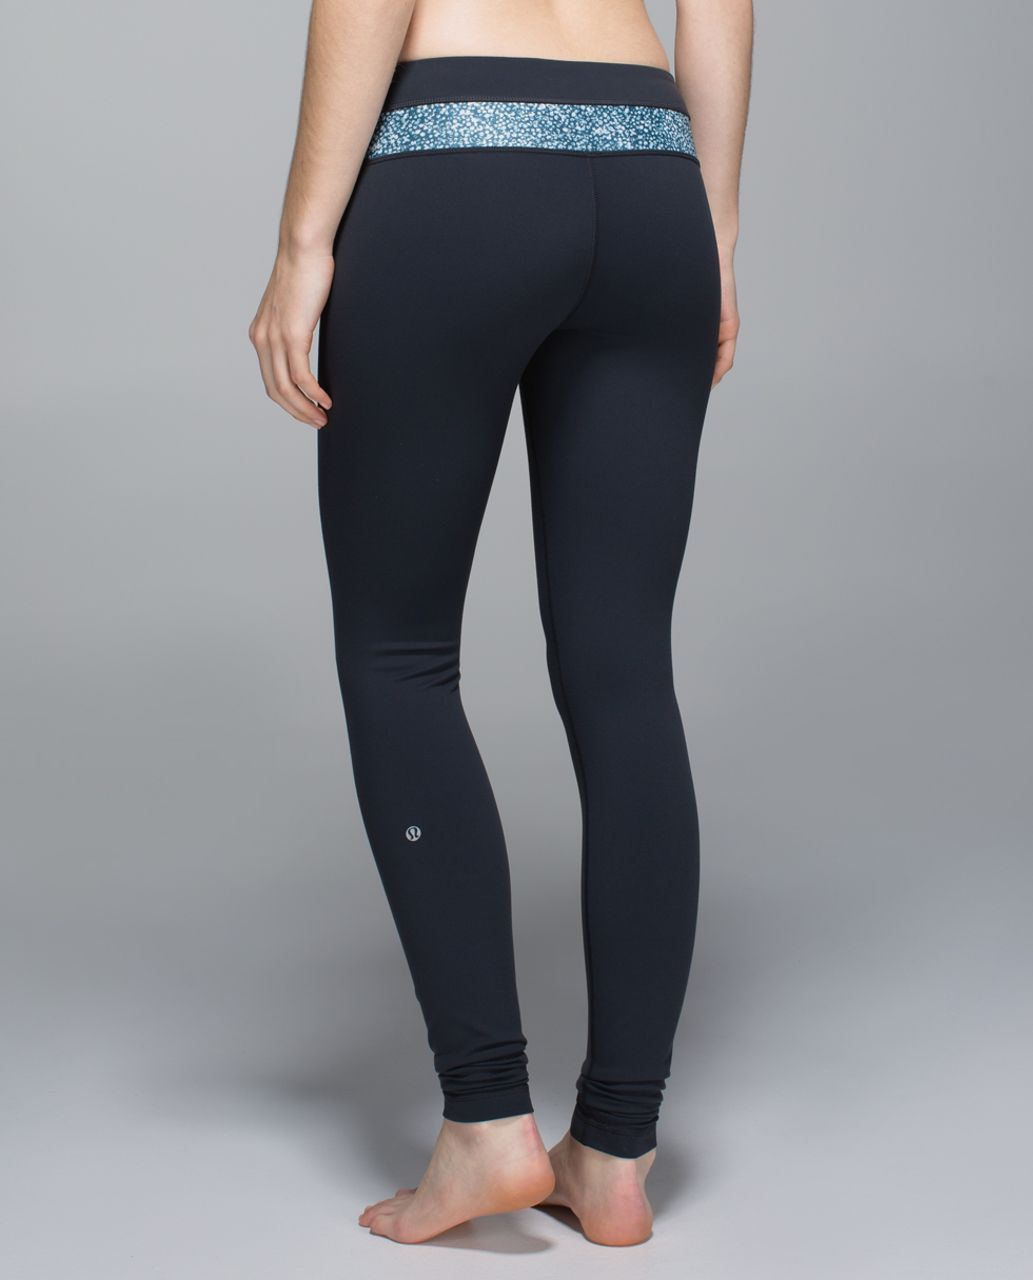 Lululemon Wunder Under Pant *Full-On Luon - Deep Coal / Wi14 Quilt 6